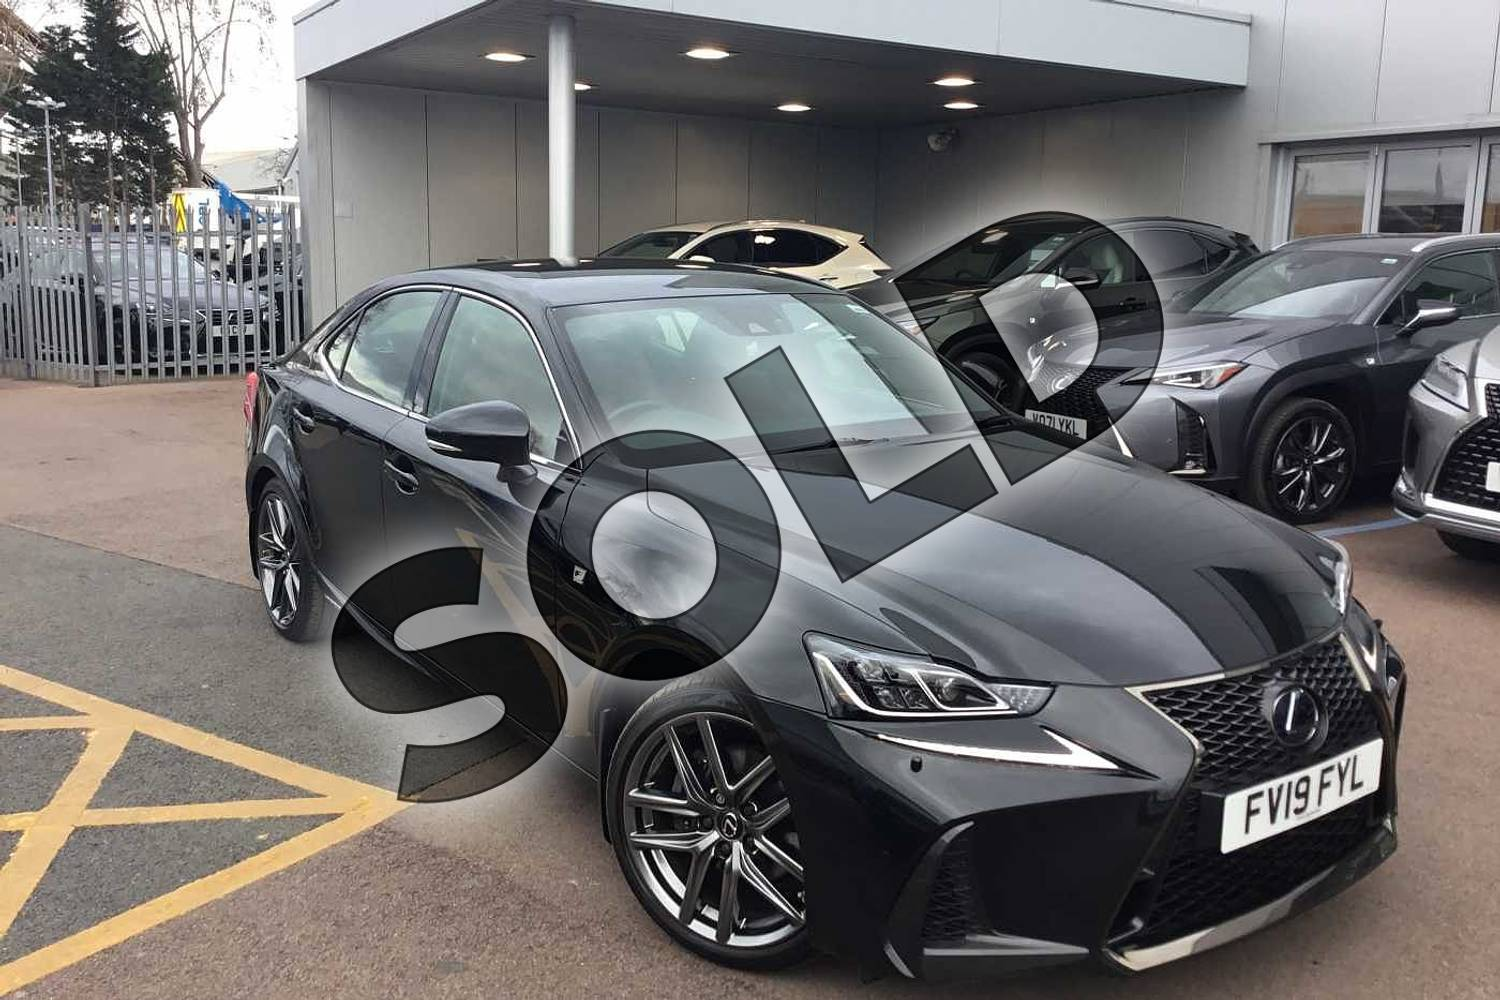 2019 Lexus IS Saloon 300h F-Sport 4dr CVT Auto (Navigation) in Graphite Black at Lexus Lincoln